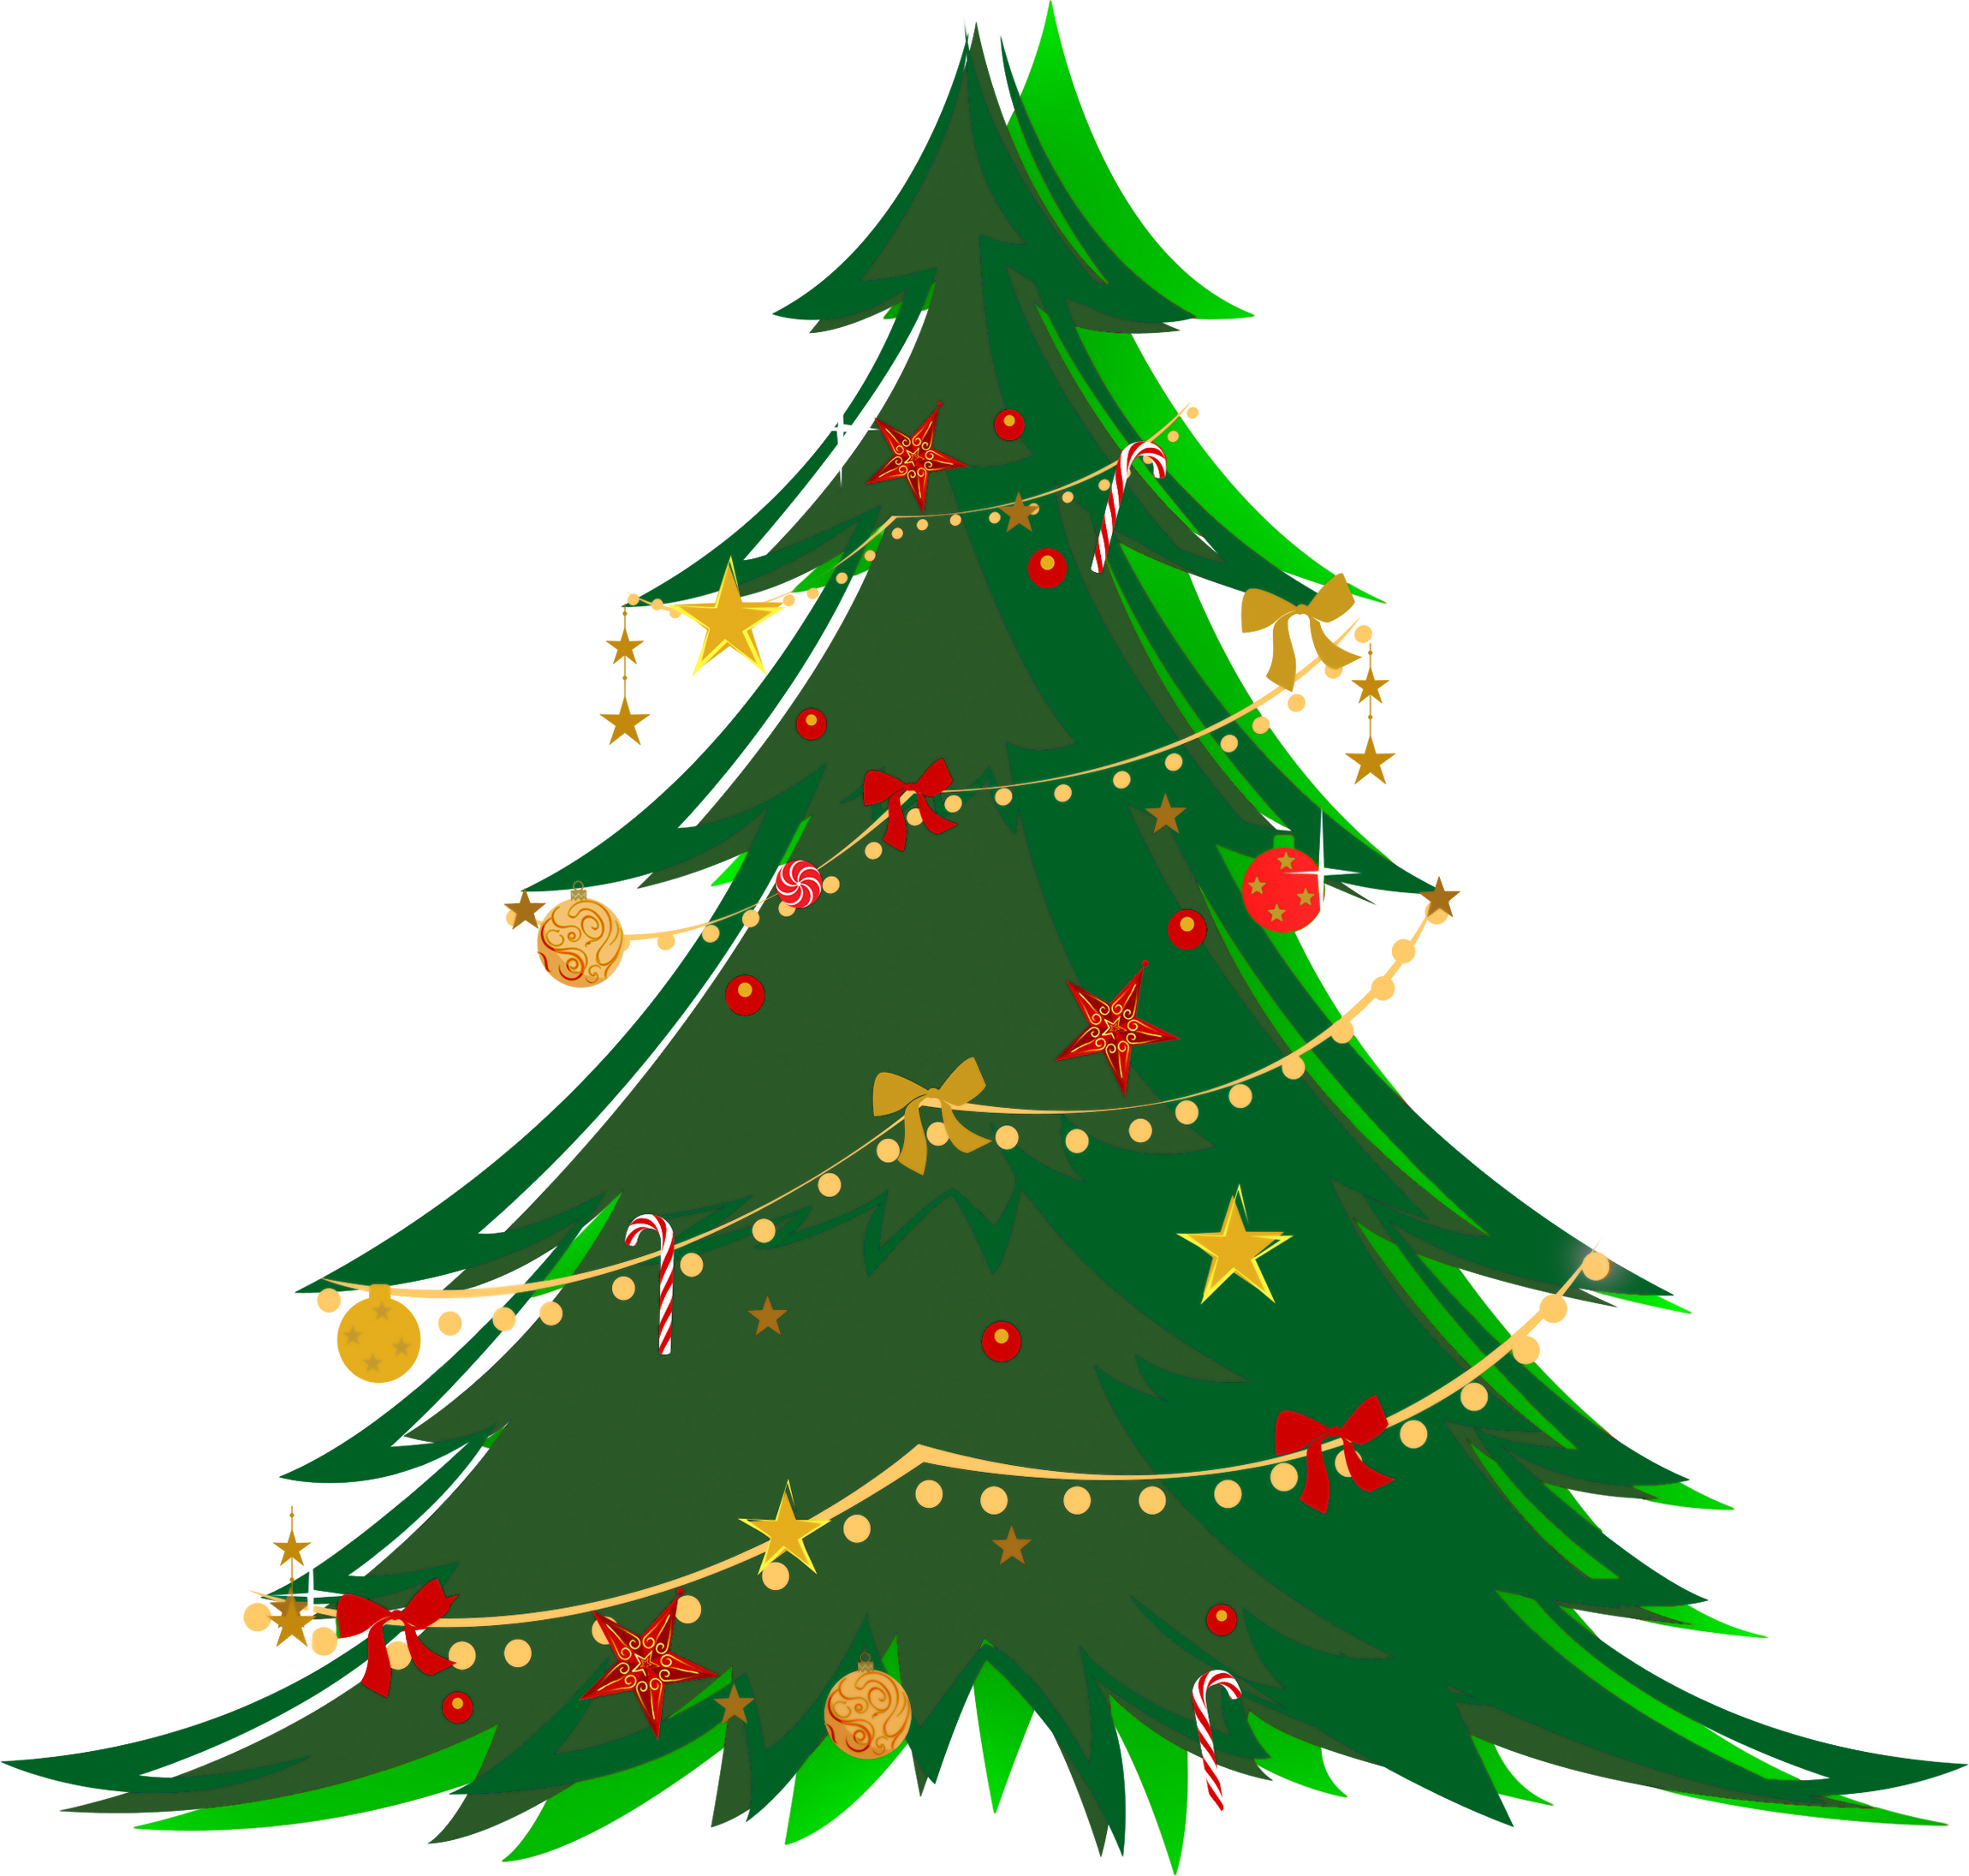 Christmas clipart transparent background. Collection of free